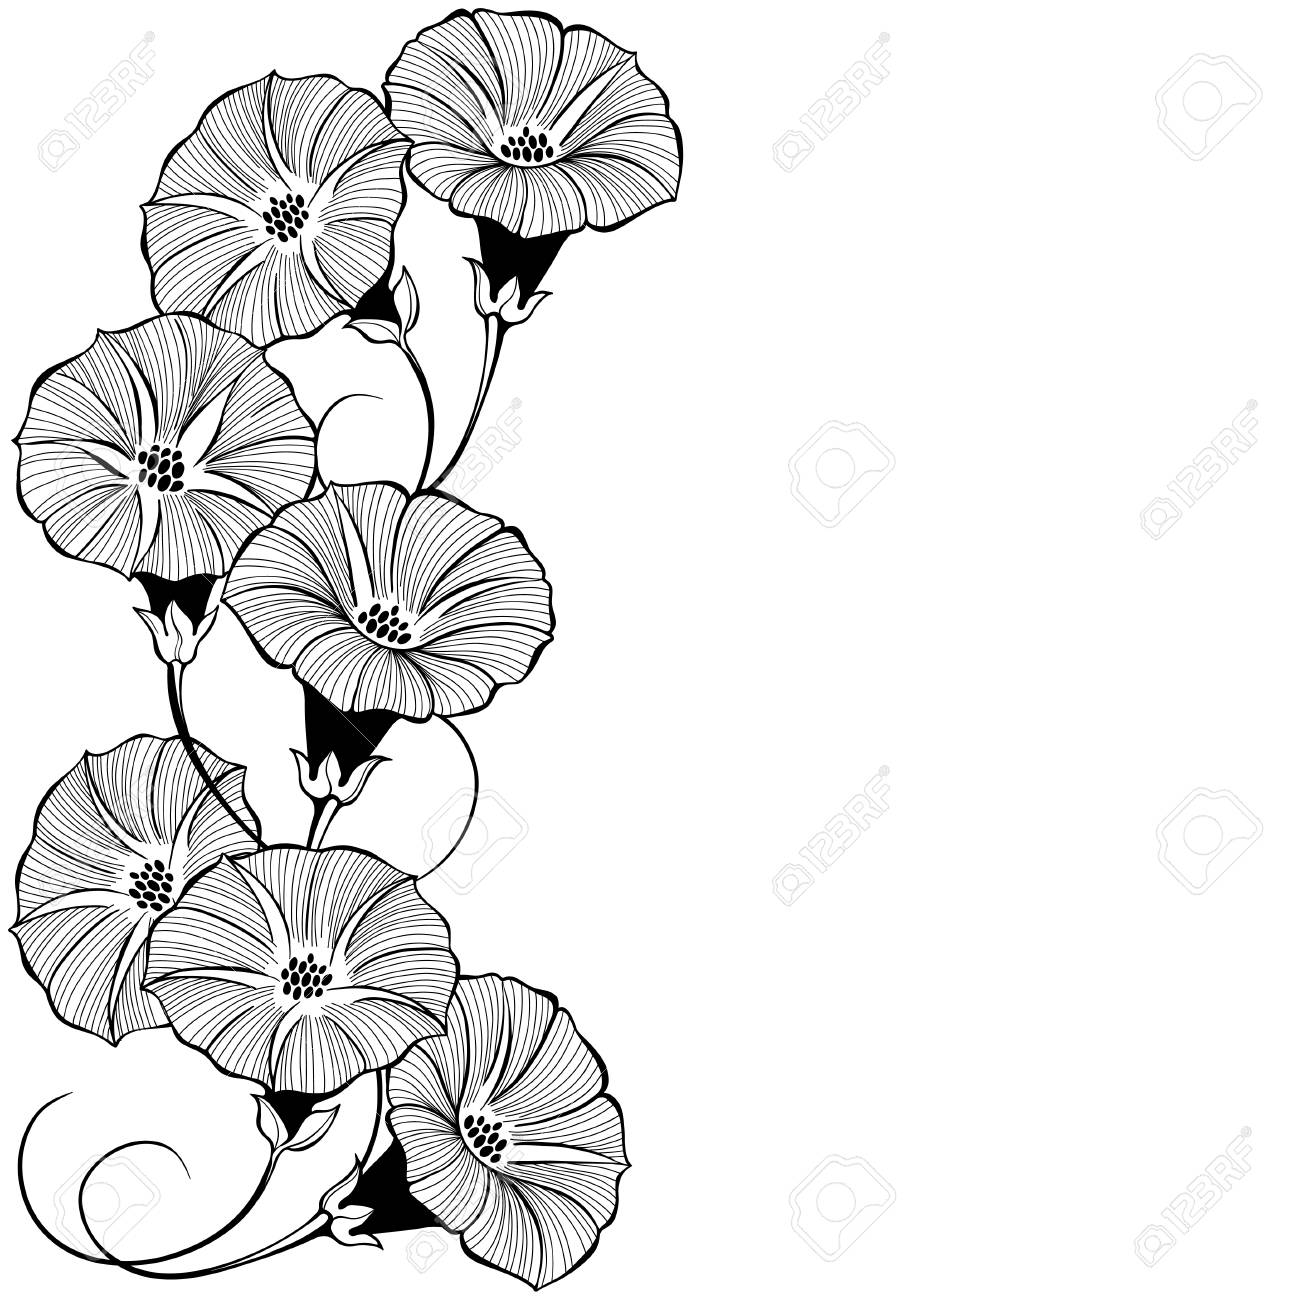 Floral design with bindweed on a white background. Vector illustration with place for text. Greeting card, invitation or isolated elements for design.Vertical composition. - 104363126